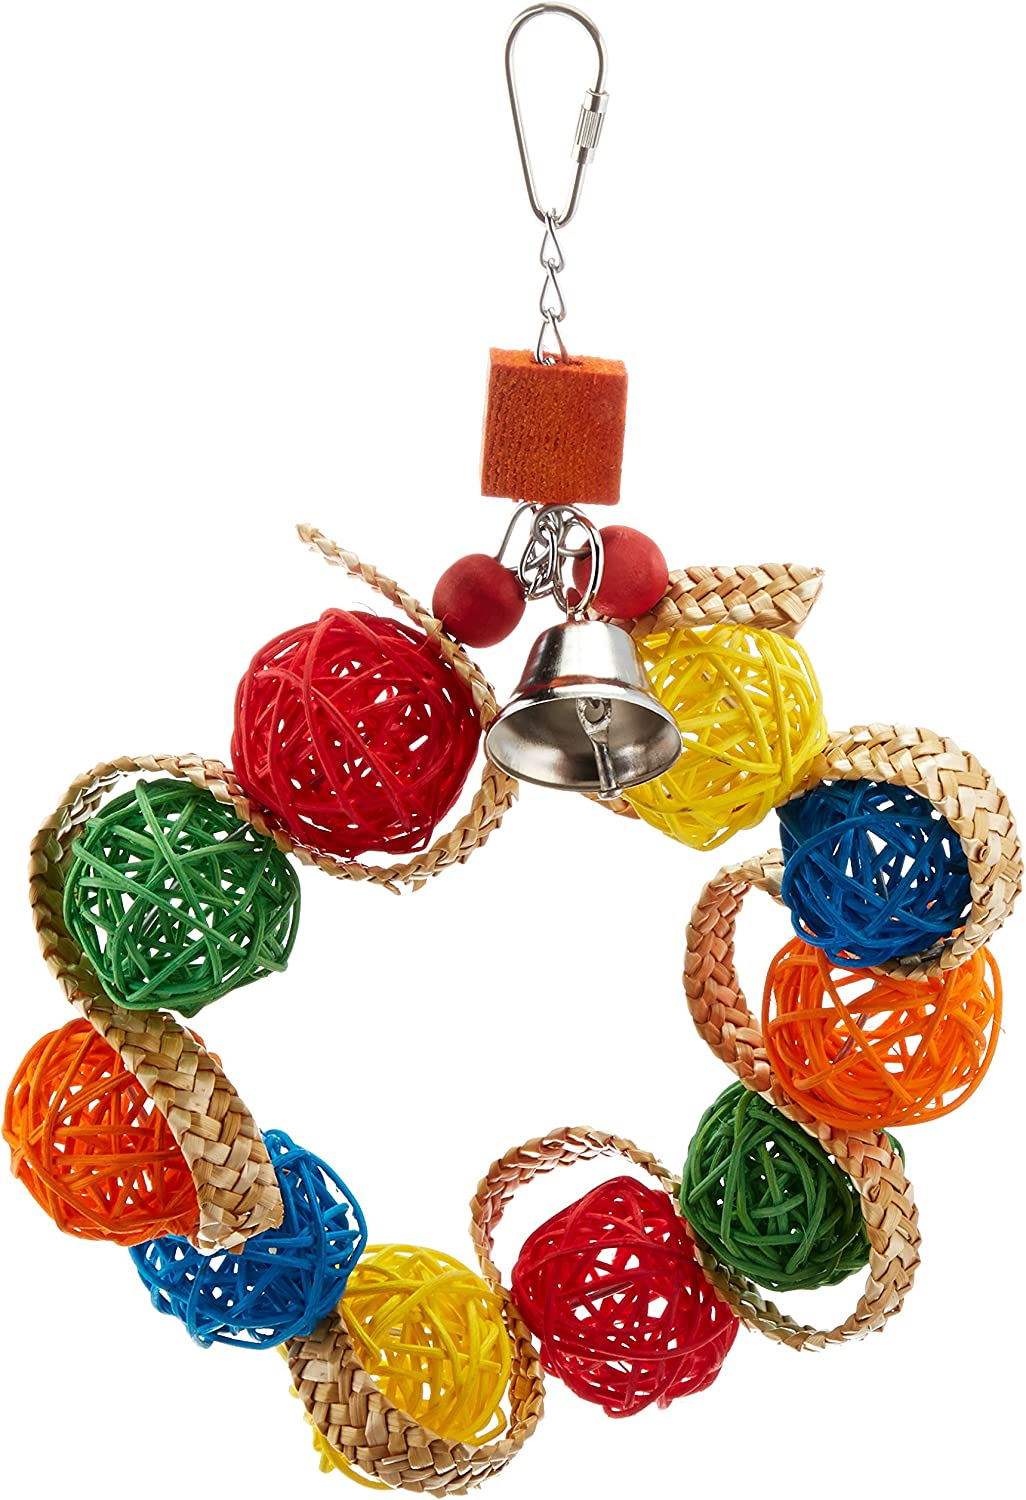 Paradise Vine Ball Braided Wreath Pet Toy, 7.5 by 1 by 7.5Inch